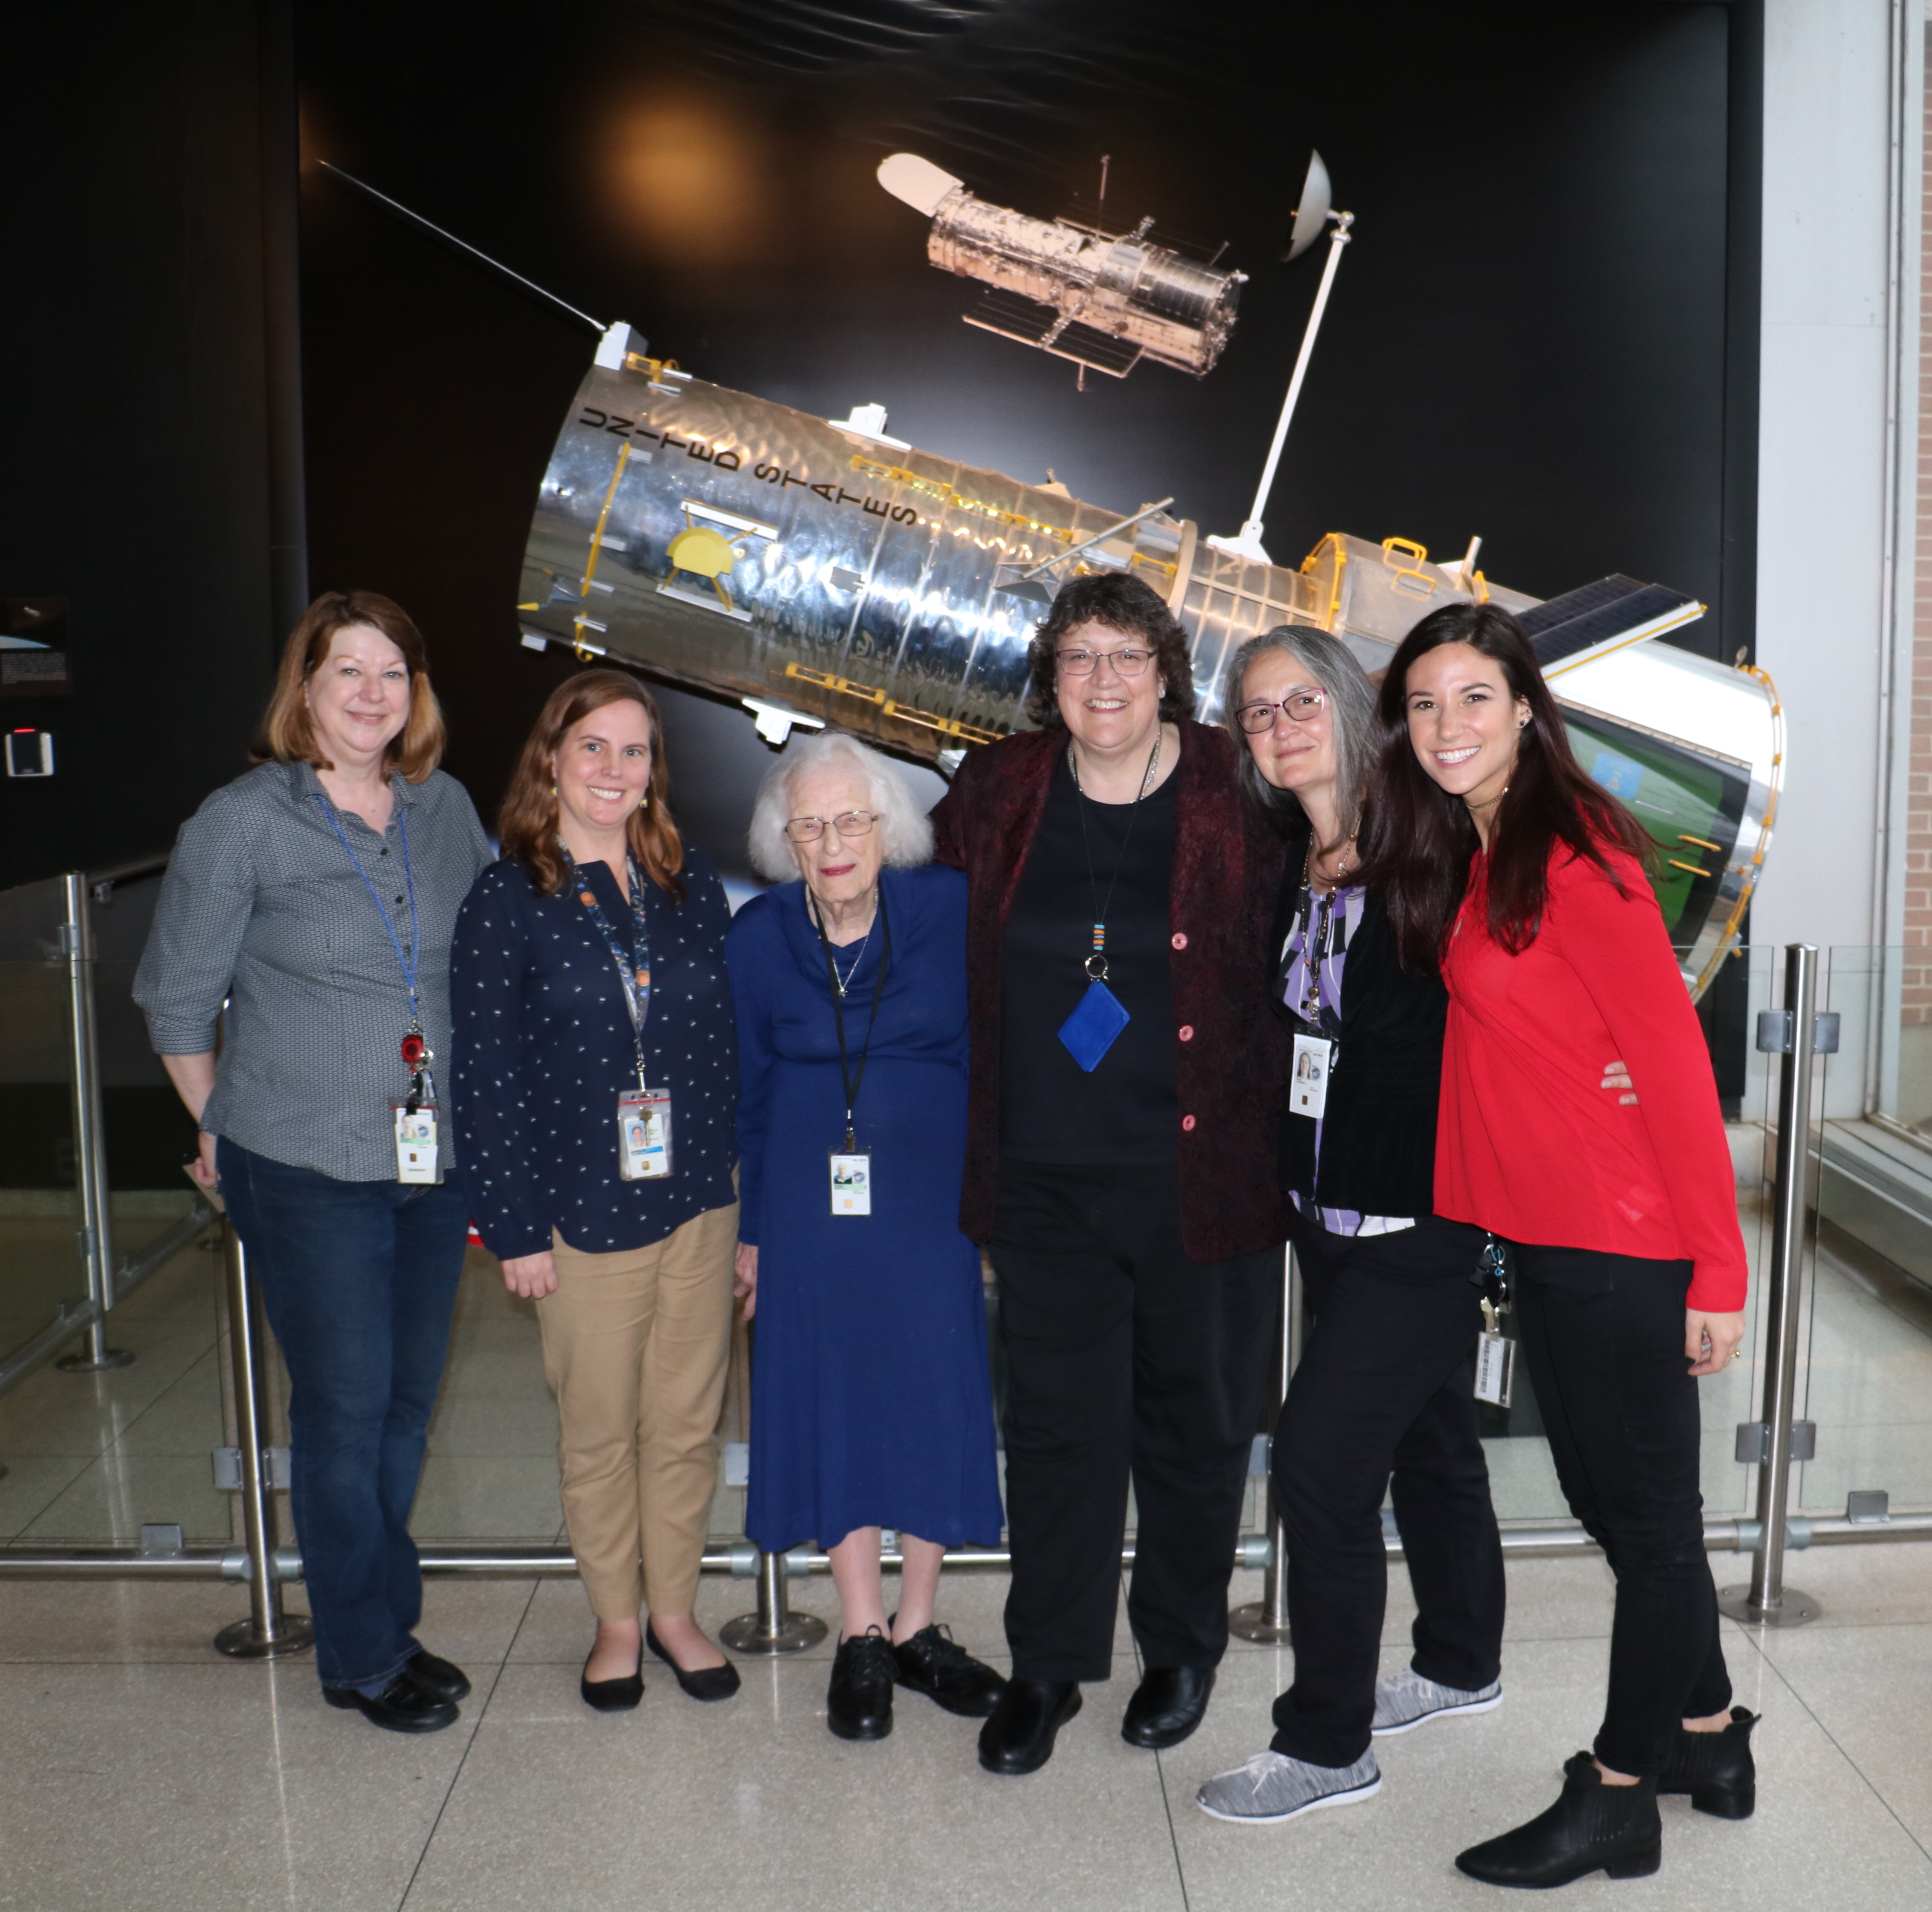 Paving the Way for Future Generations of Women in STEM